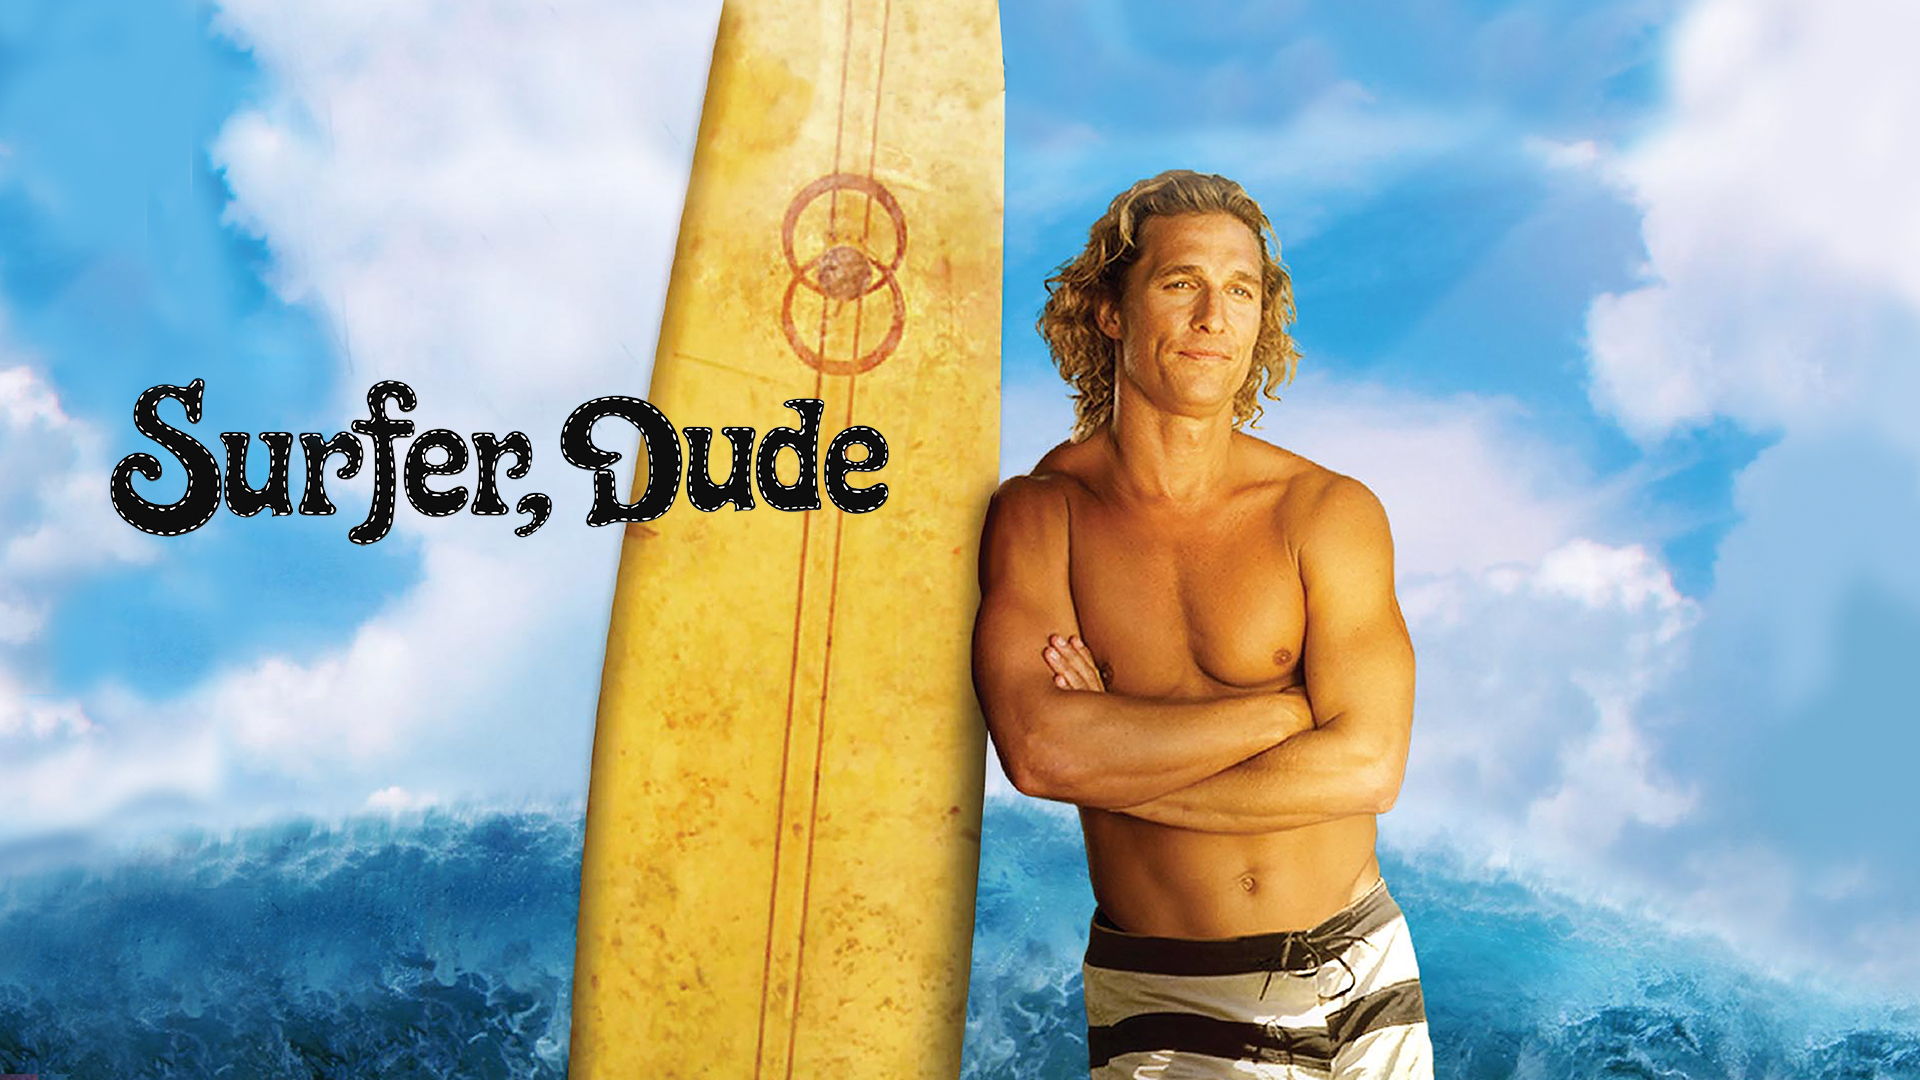 Surfer Dude Stream